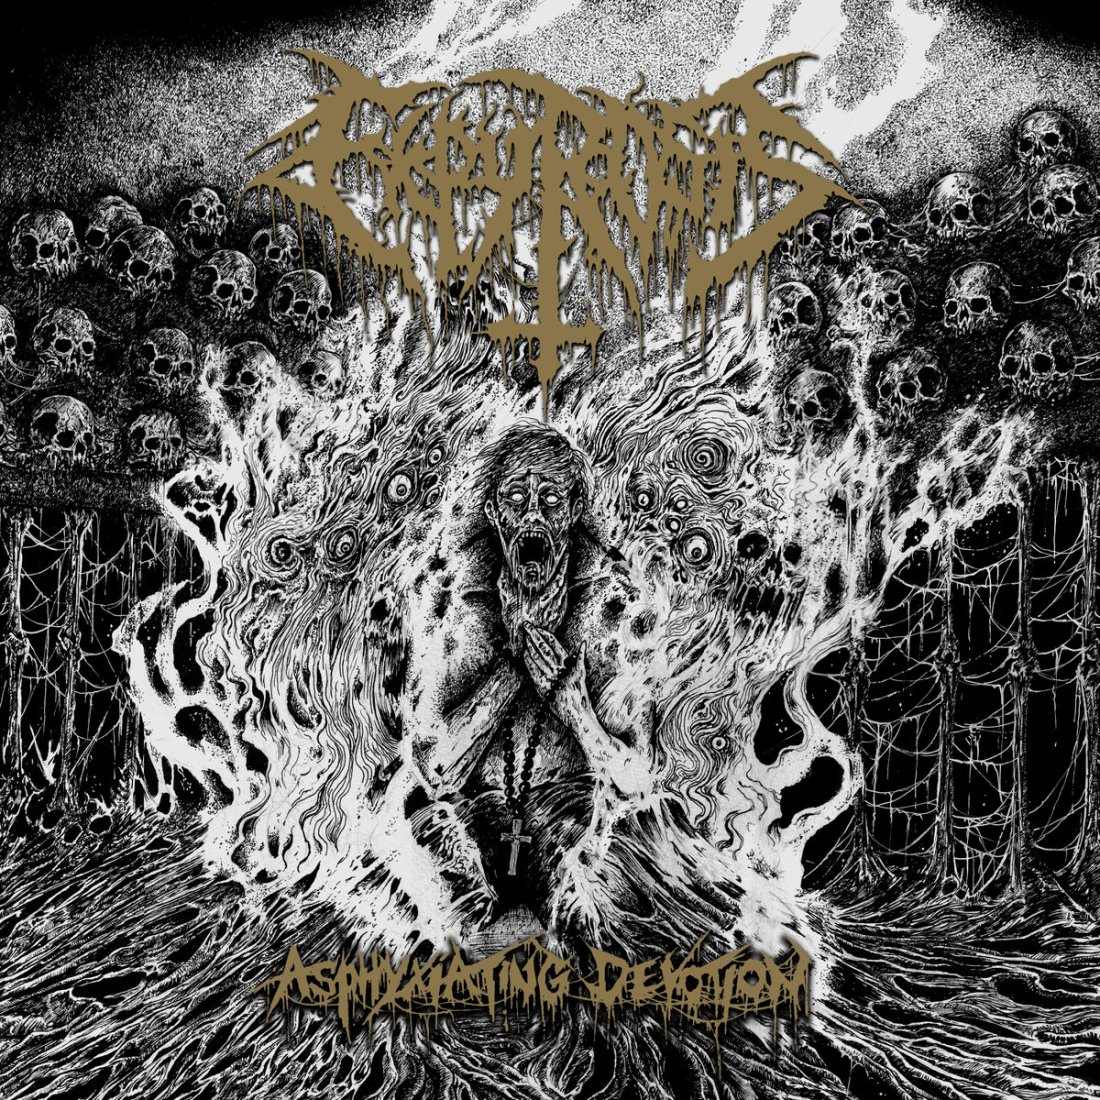 ekpyrosis_asphyxiating_devotion